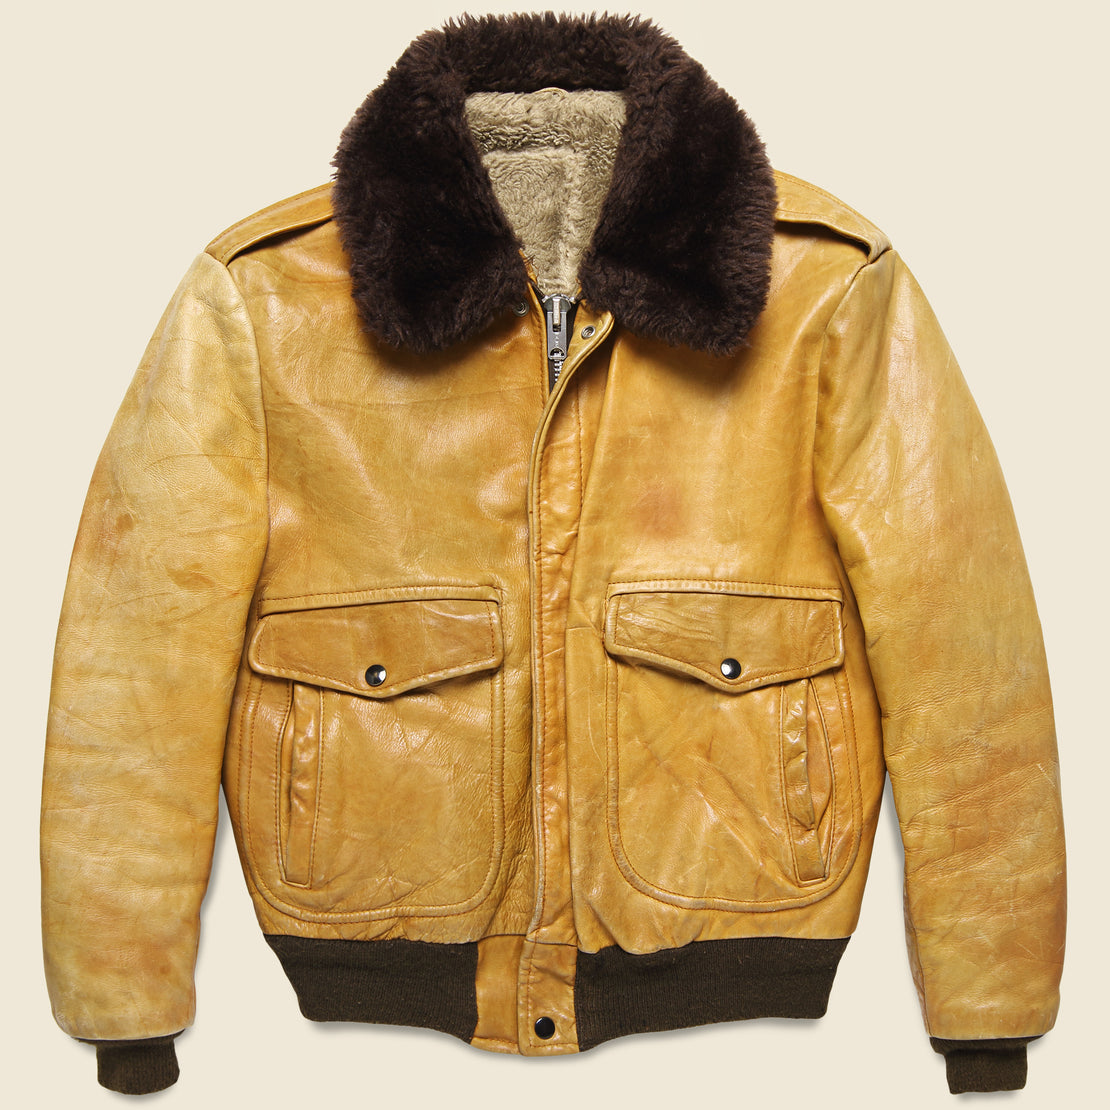 Vintage Sherpa-Lined Leather Bomber Jacket